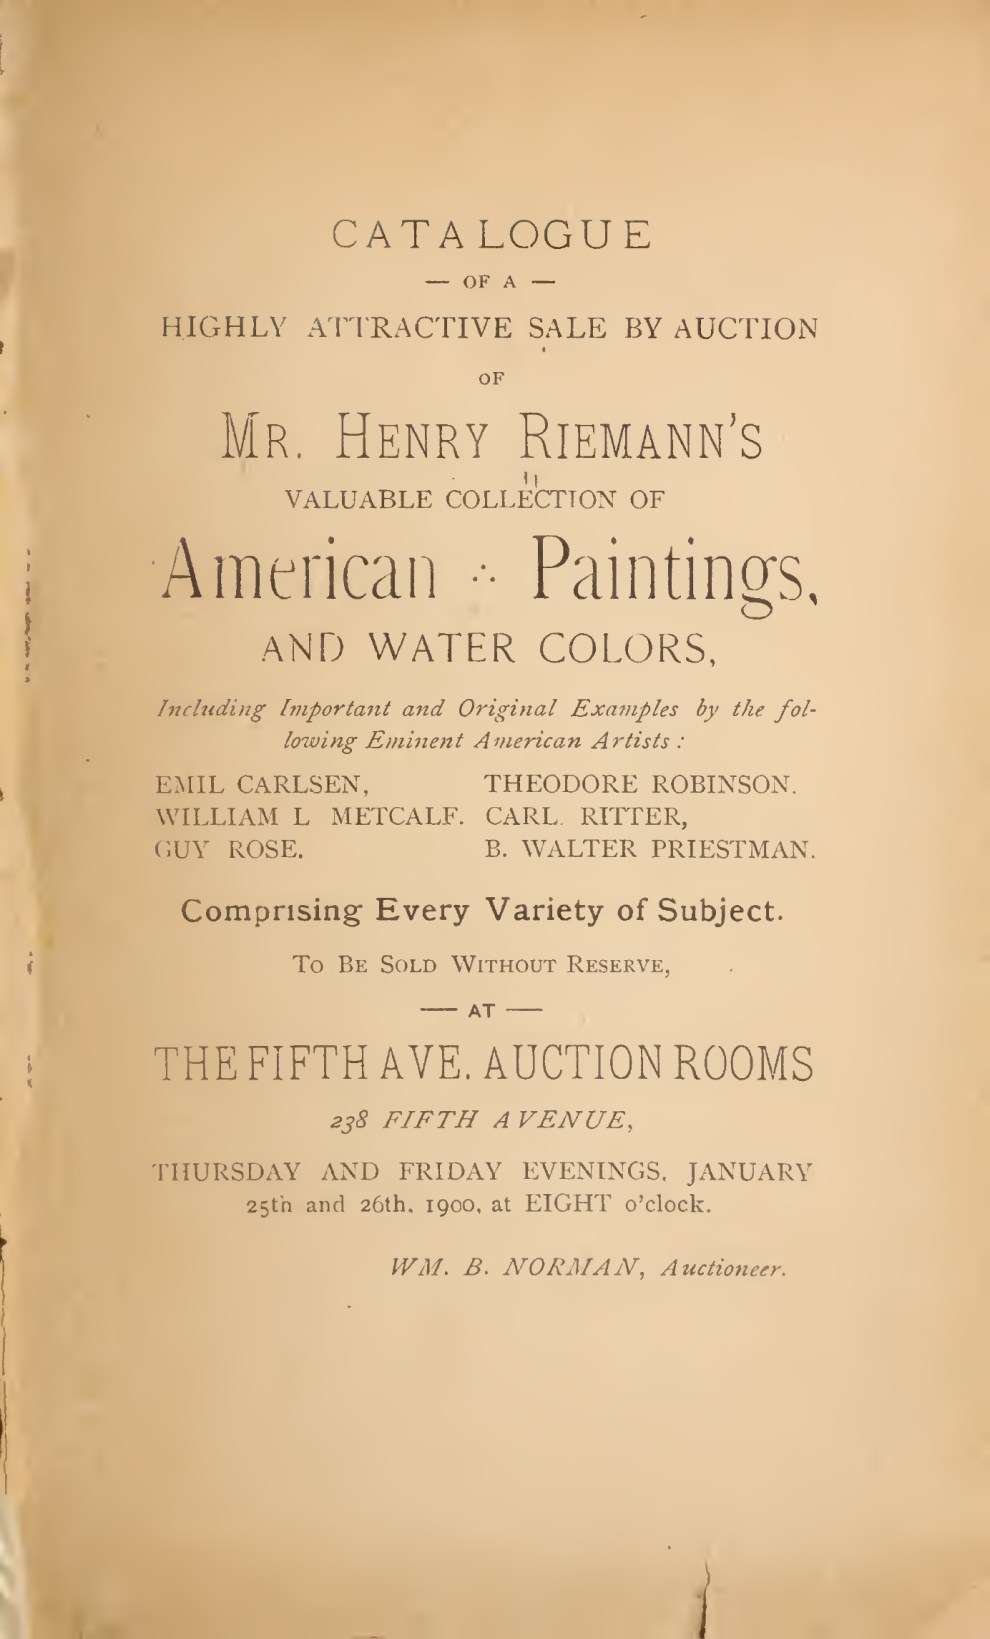 "1900 American Art Association, New York, NY, ""Highly attractive sale by auction of Mr. Henry Riemann's valuable collection of American paintings, and water colors, including important and original examples by the following eminent American artists : Emil Carlsen, William L. Metcalf, Guy Rose, Theodore Robinson, Carl Ritter, B. Walter Priestman comprising every variety of subject to be sold without reserve…"", January 25-26."